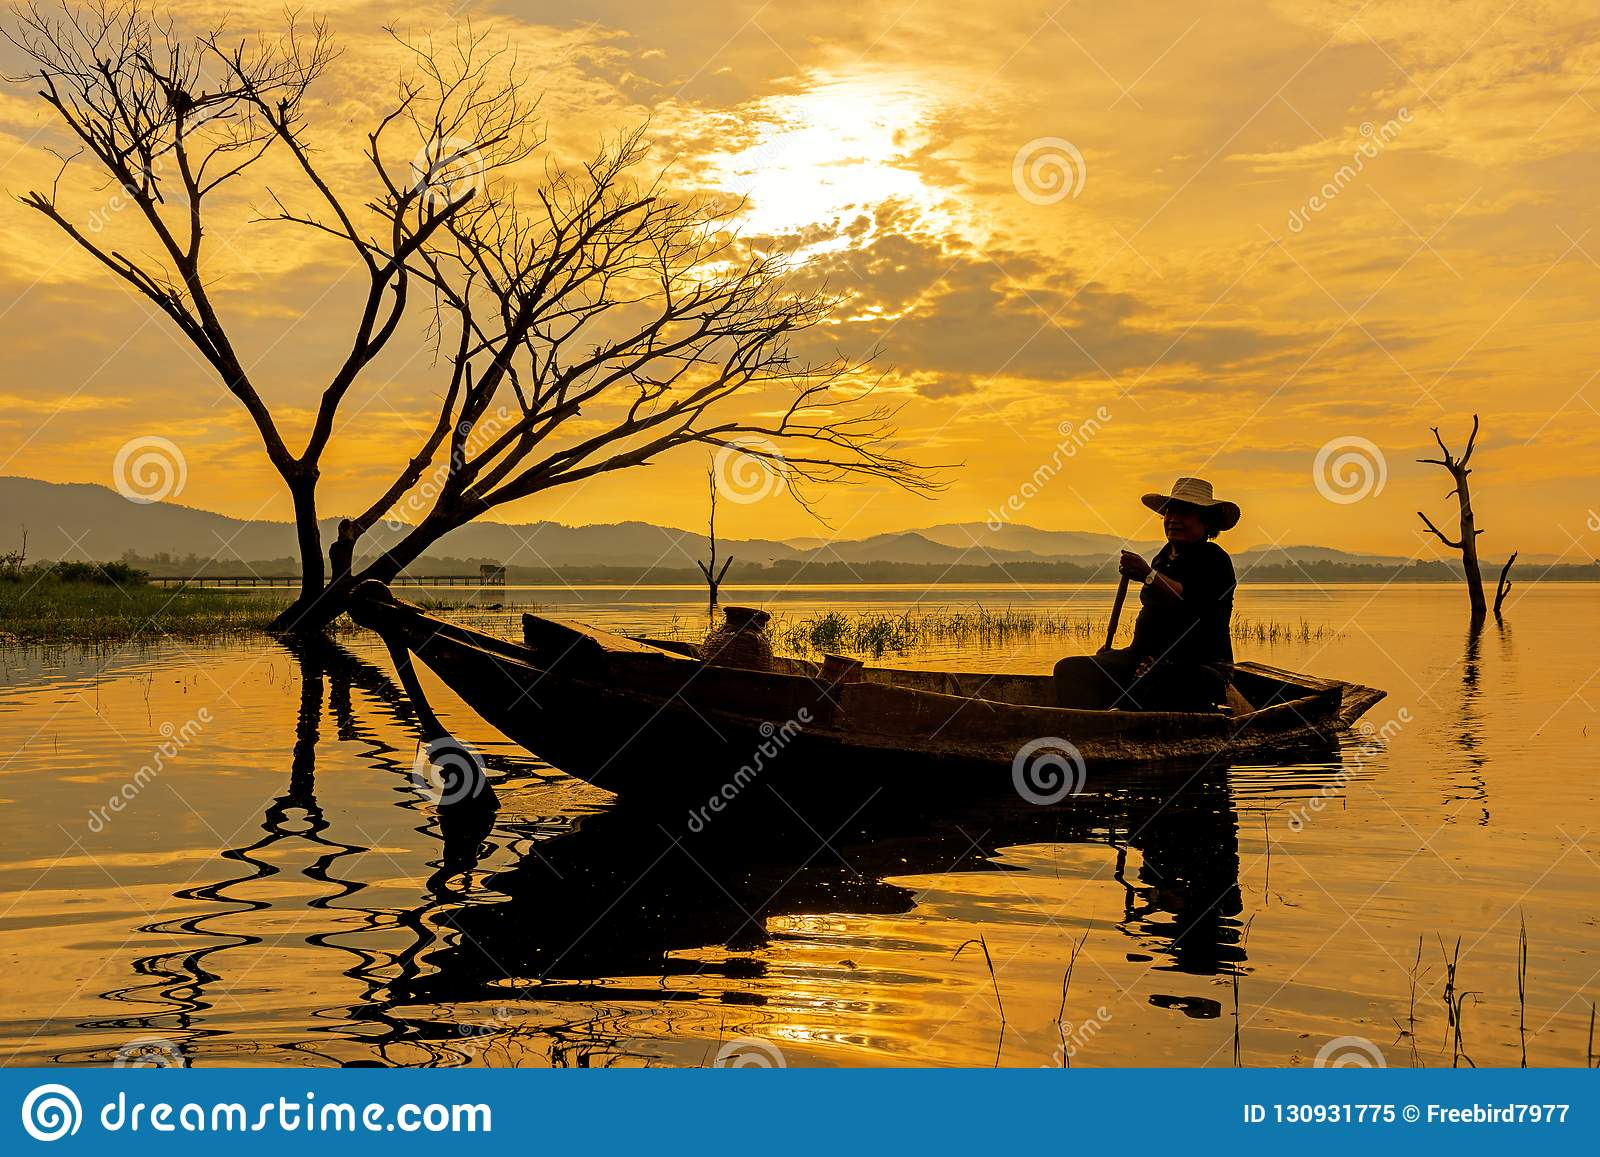 Silhouette fisherman on the fish boat on lake in the sunshine morning